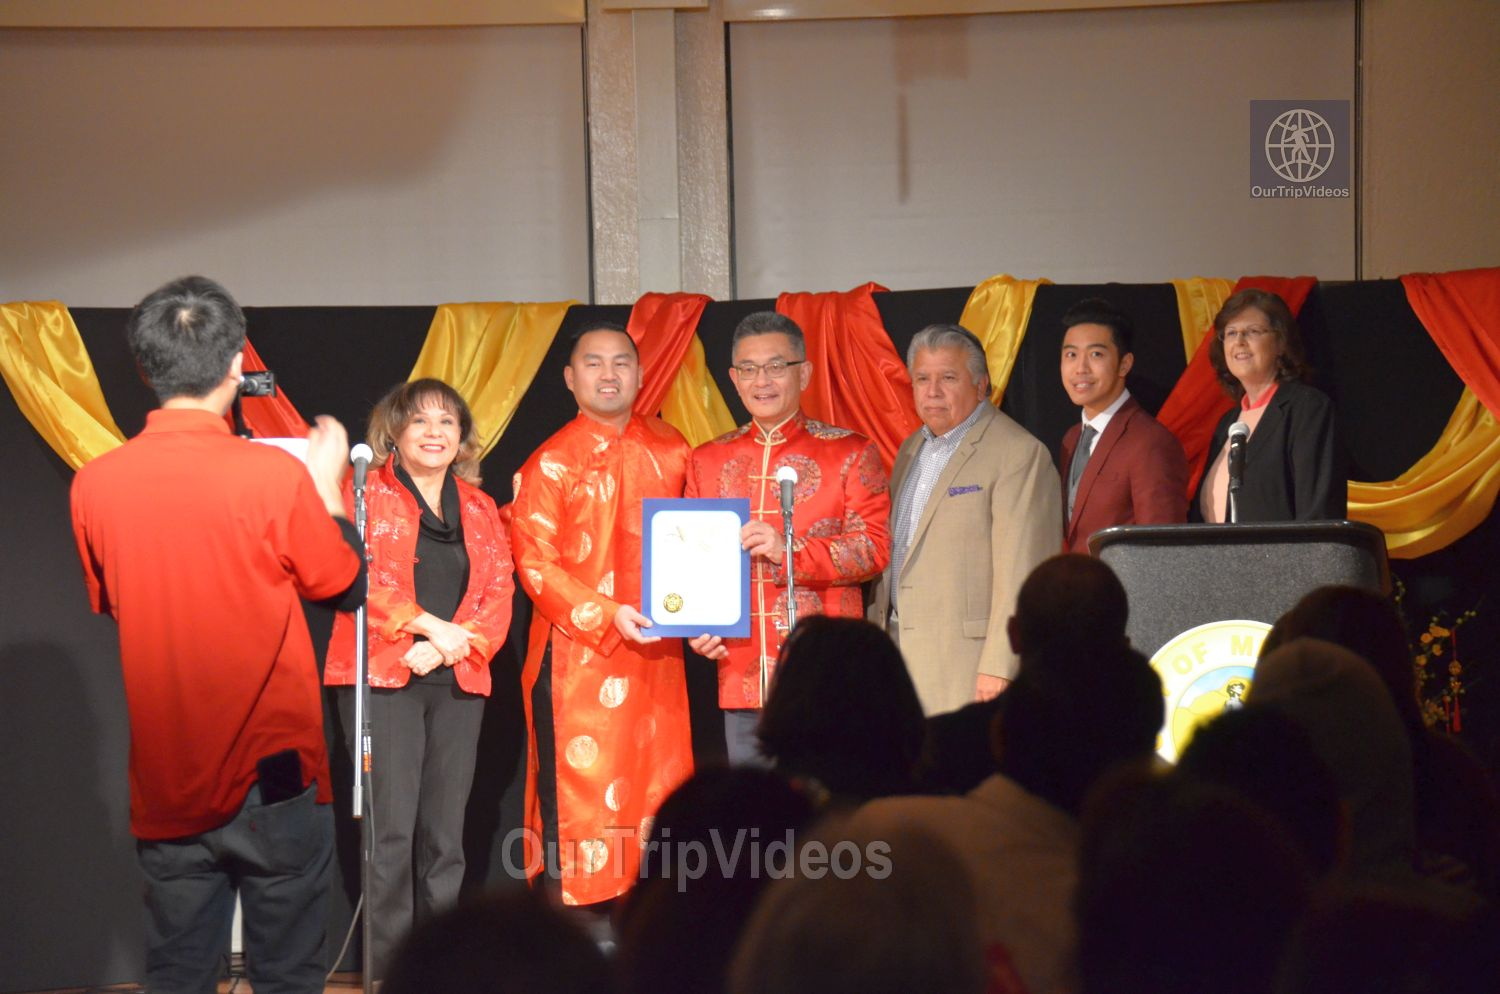 Chinese Lunar New Year Celebration, Milpitas, CA, USA - Picture 12 of 25